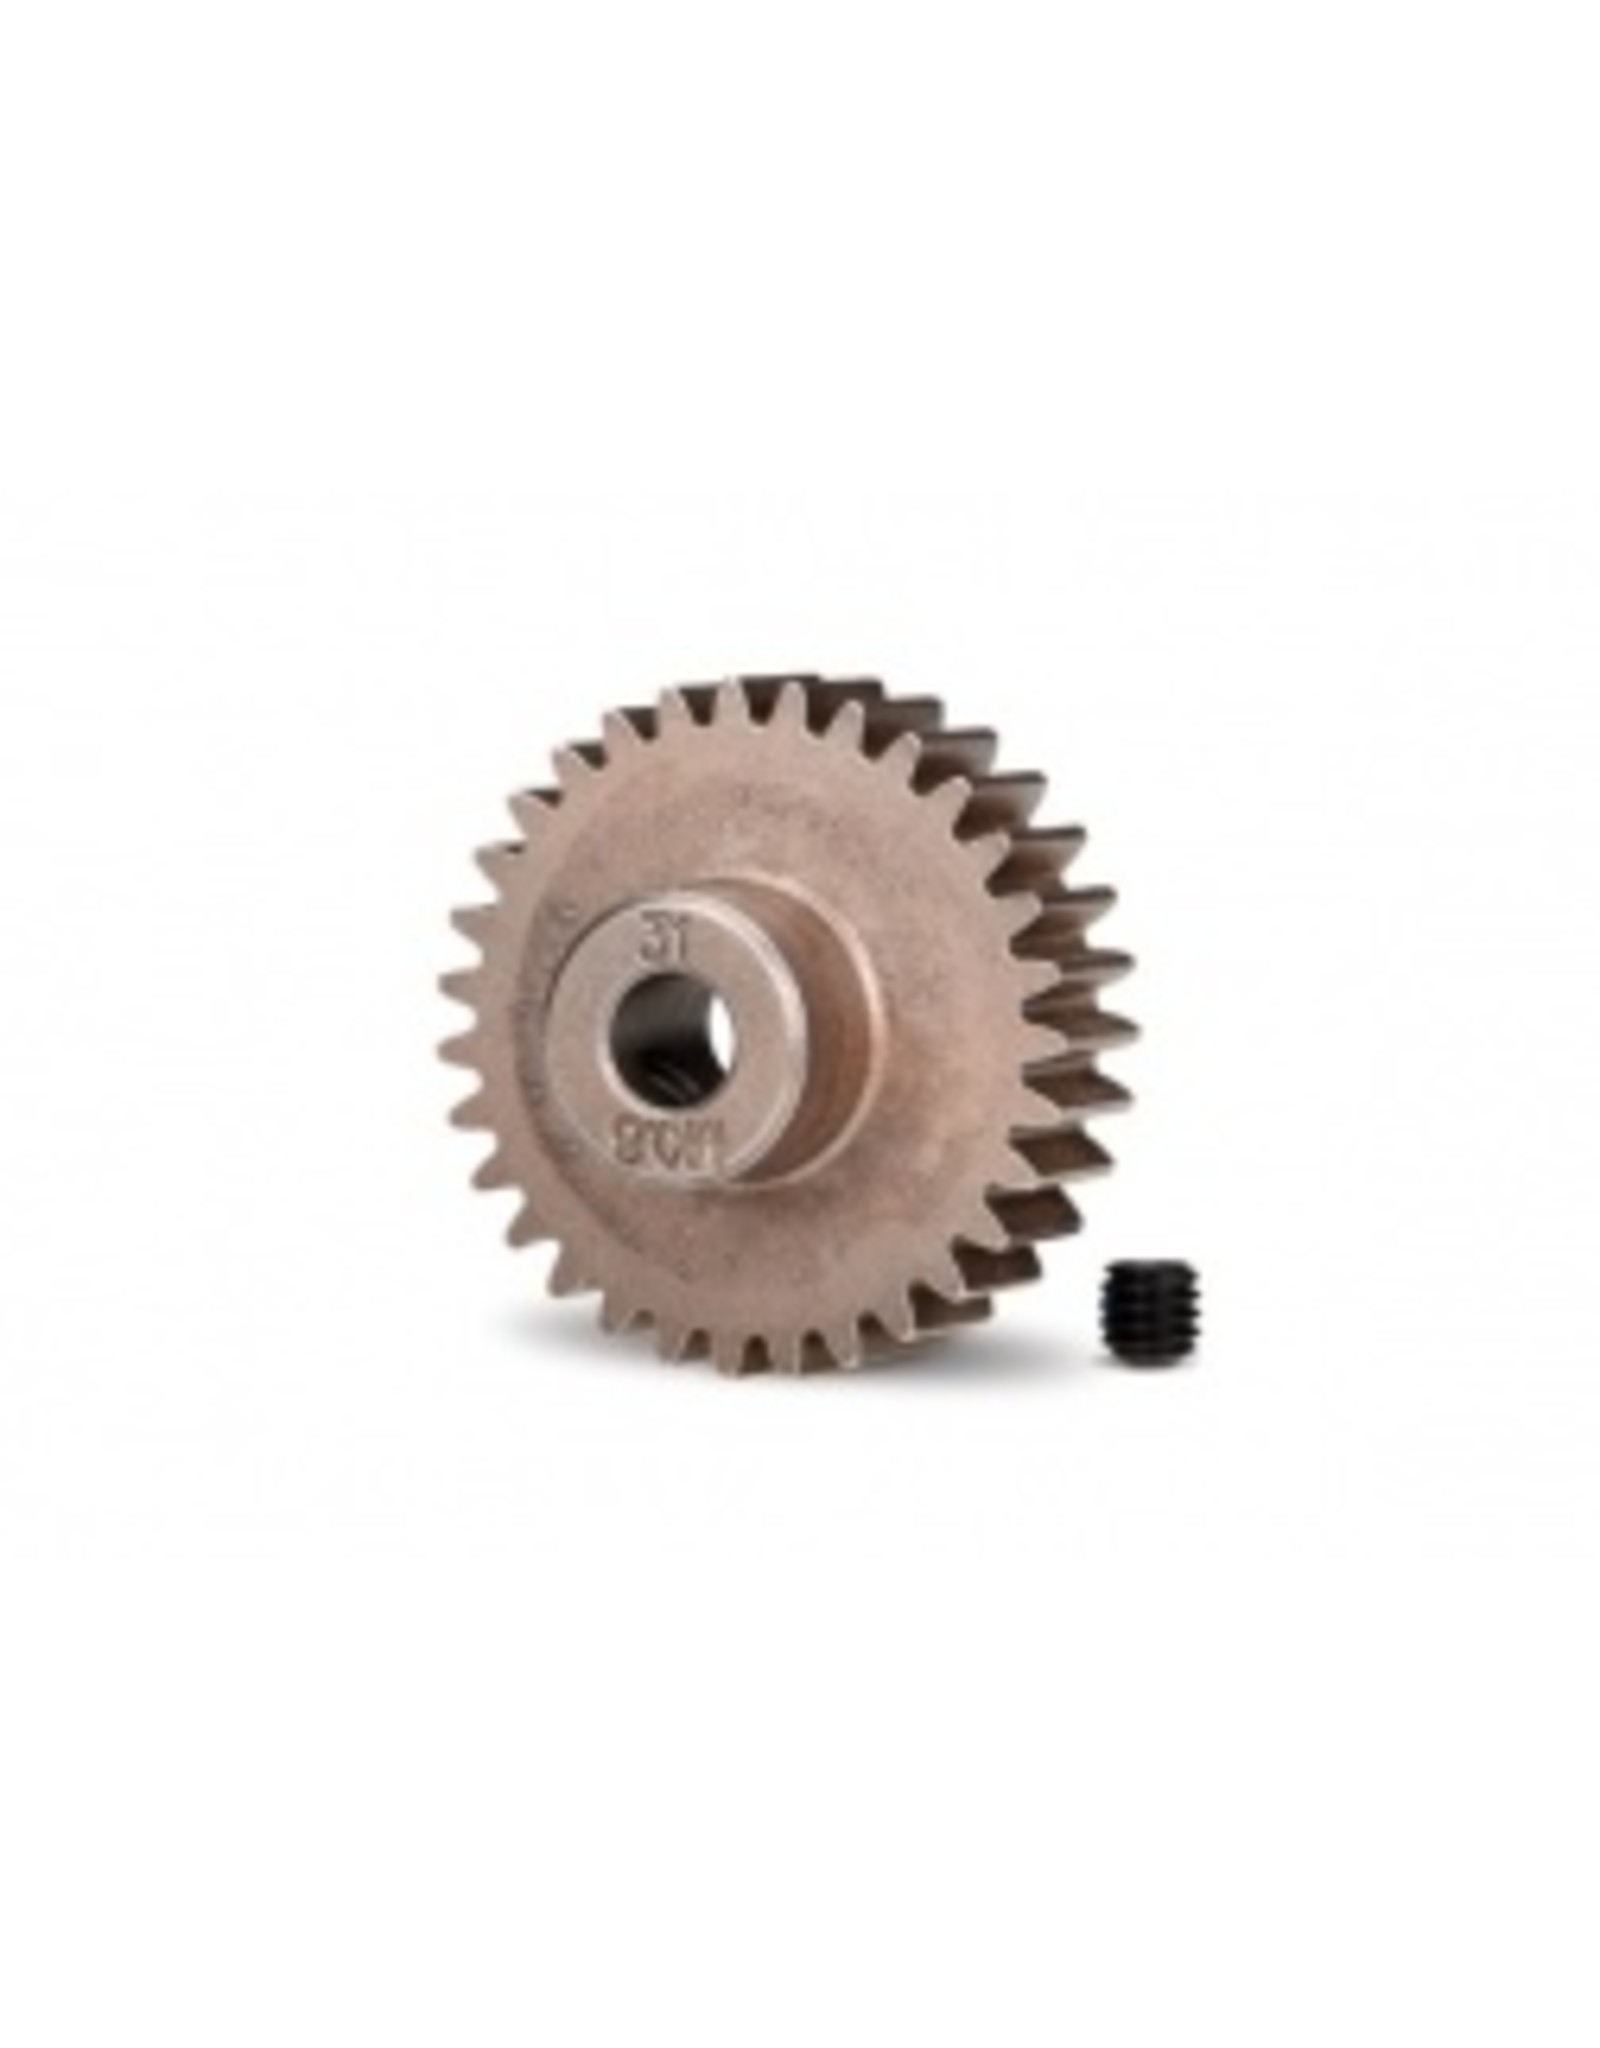 Traxxas Gear, 31-T pinion (0.8 metric pitch, compatible with 32-pitch) (fits 5mm shaft)/ set screw (5638)